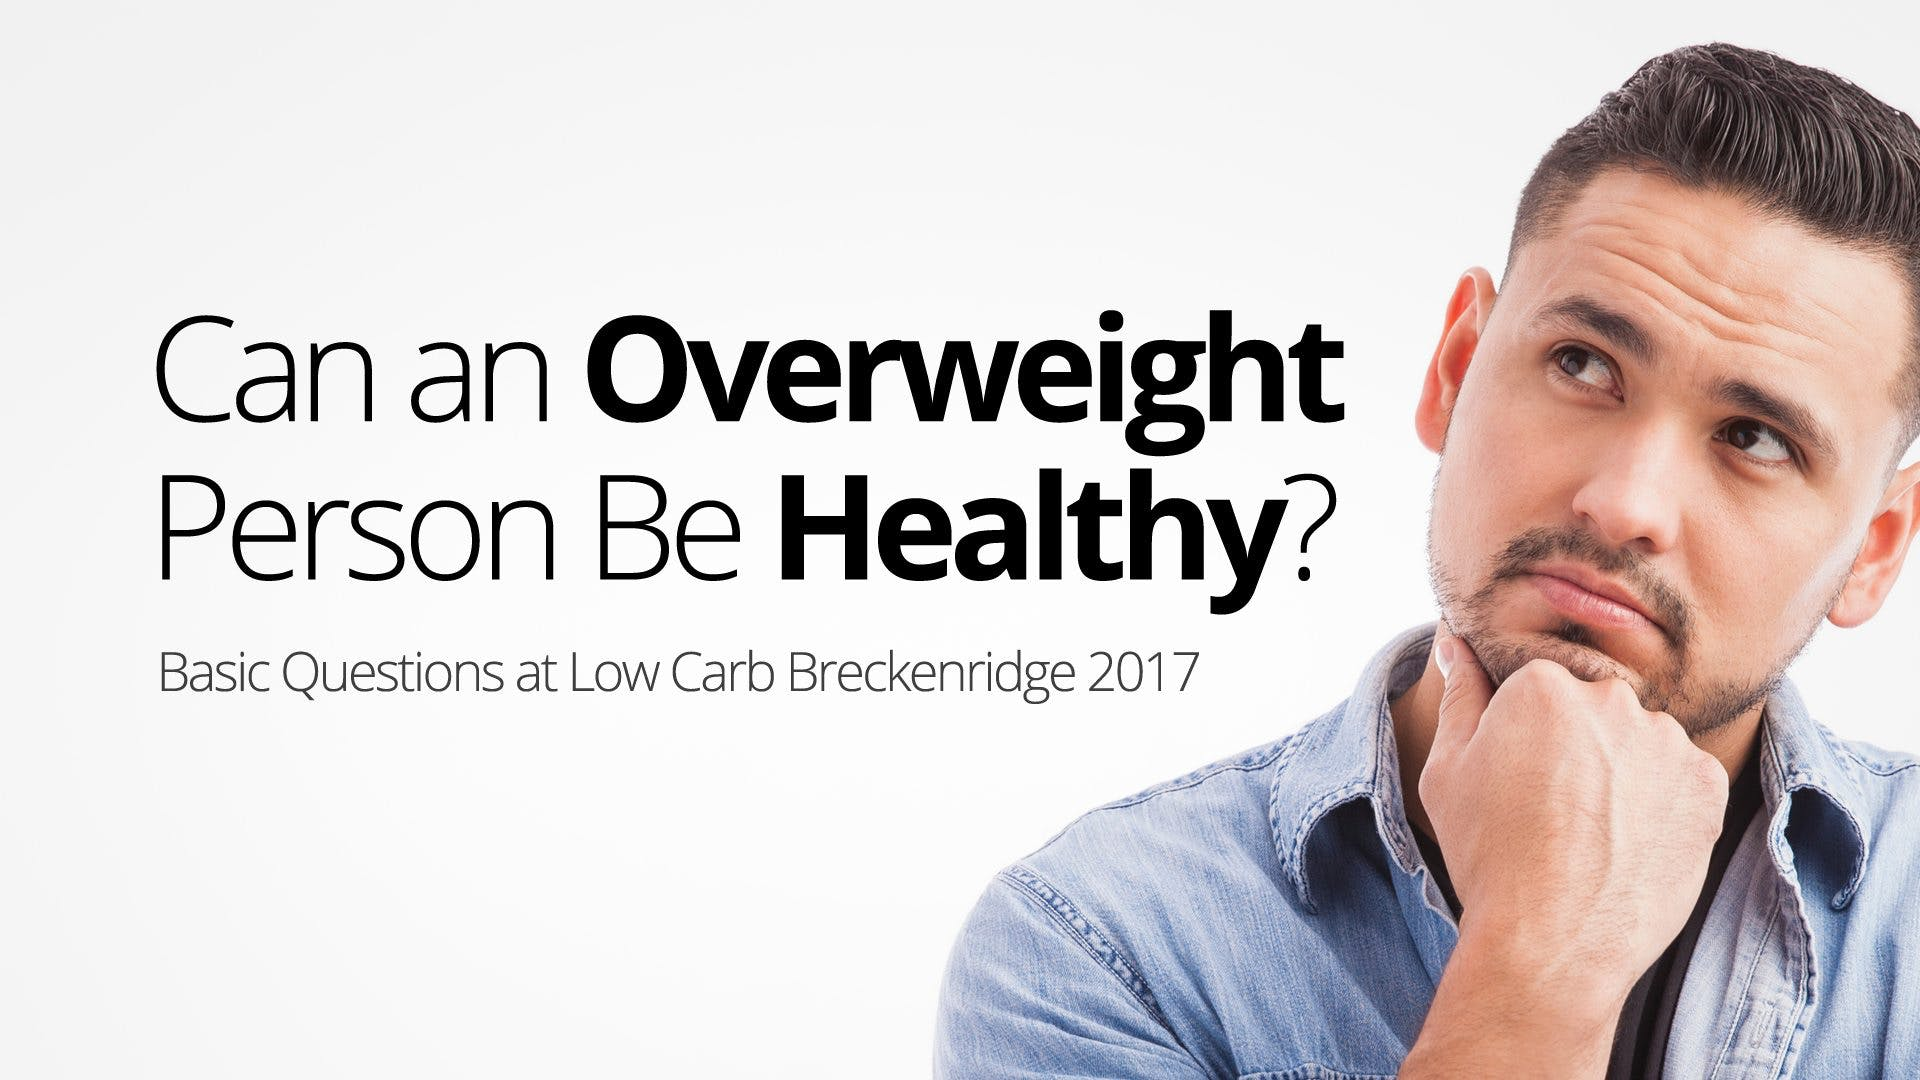 Can an Overweight Person Be Healthy?